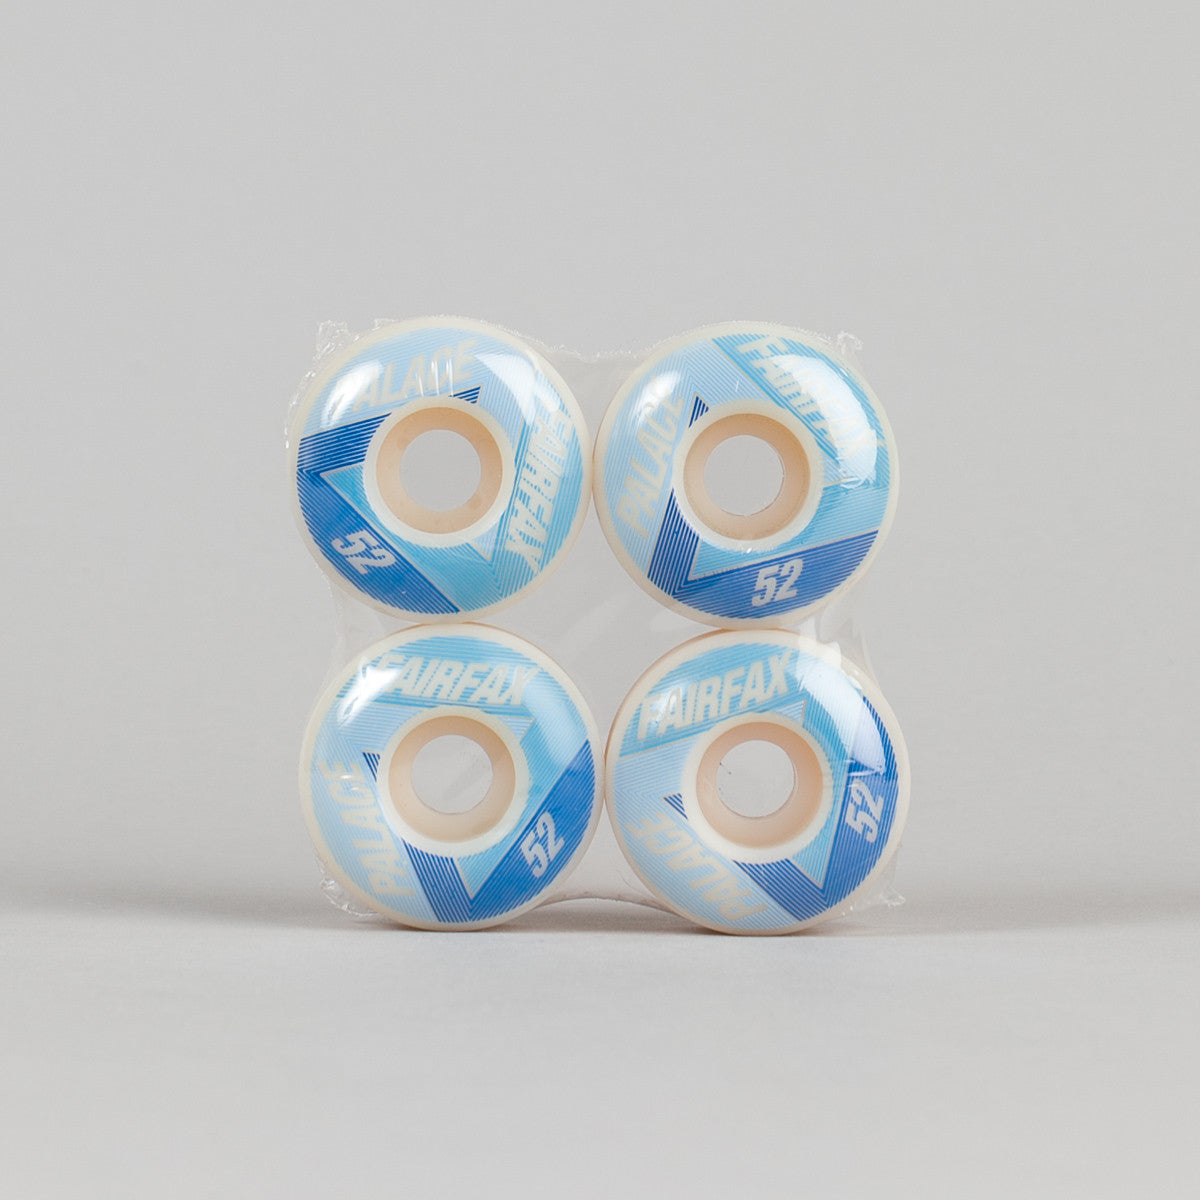 Palace Tri Ferg Benny 52mm Wheels